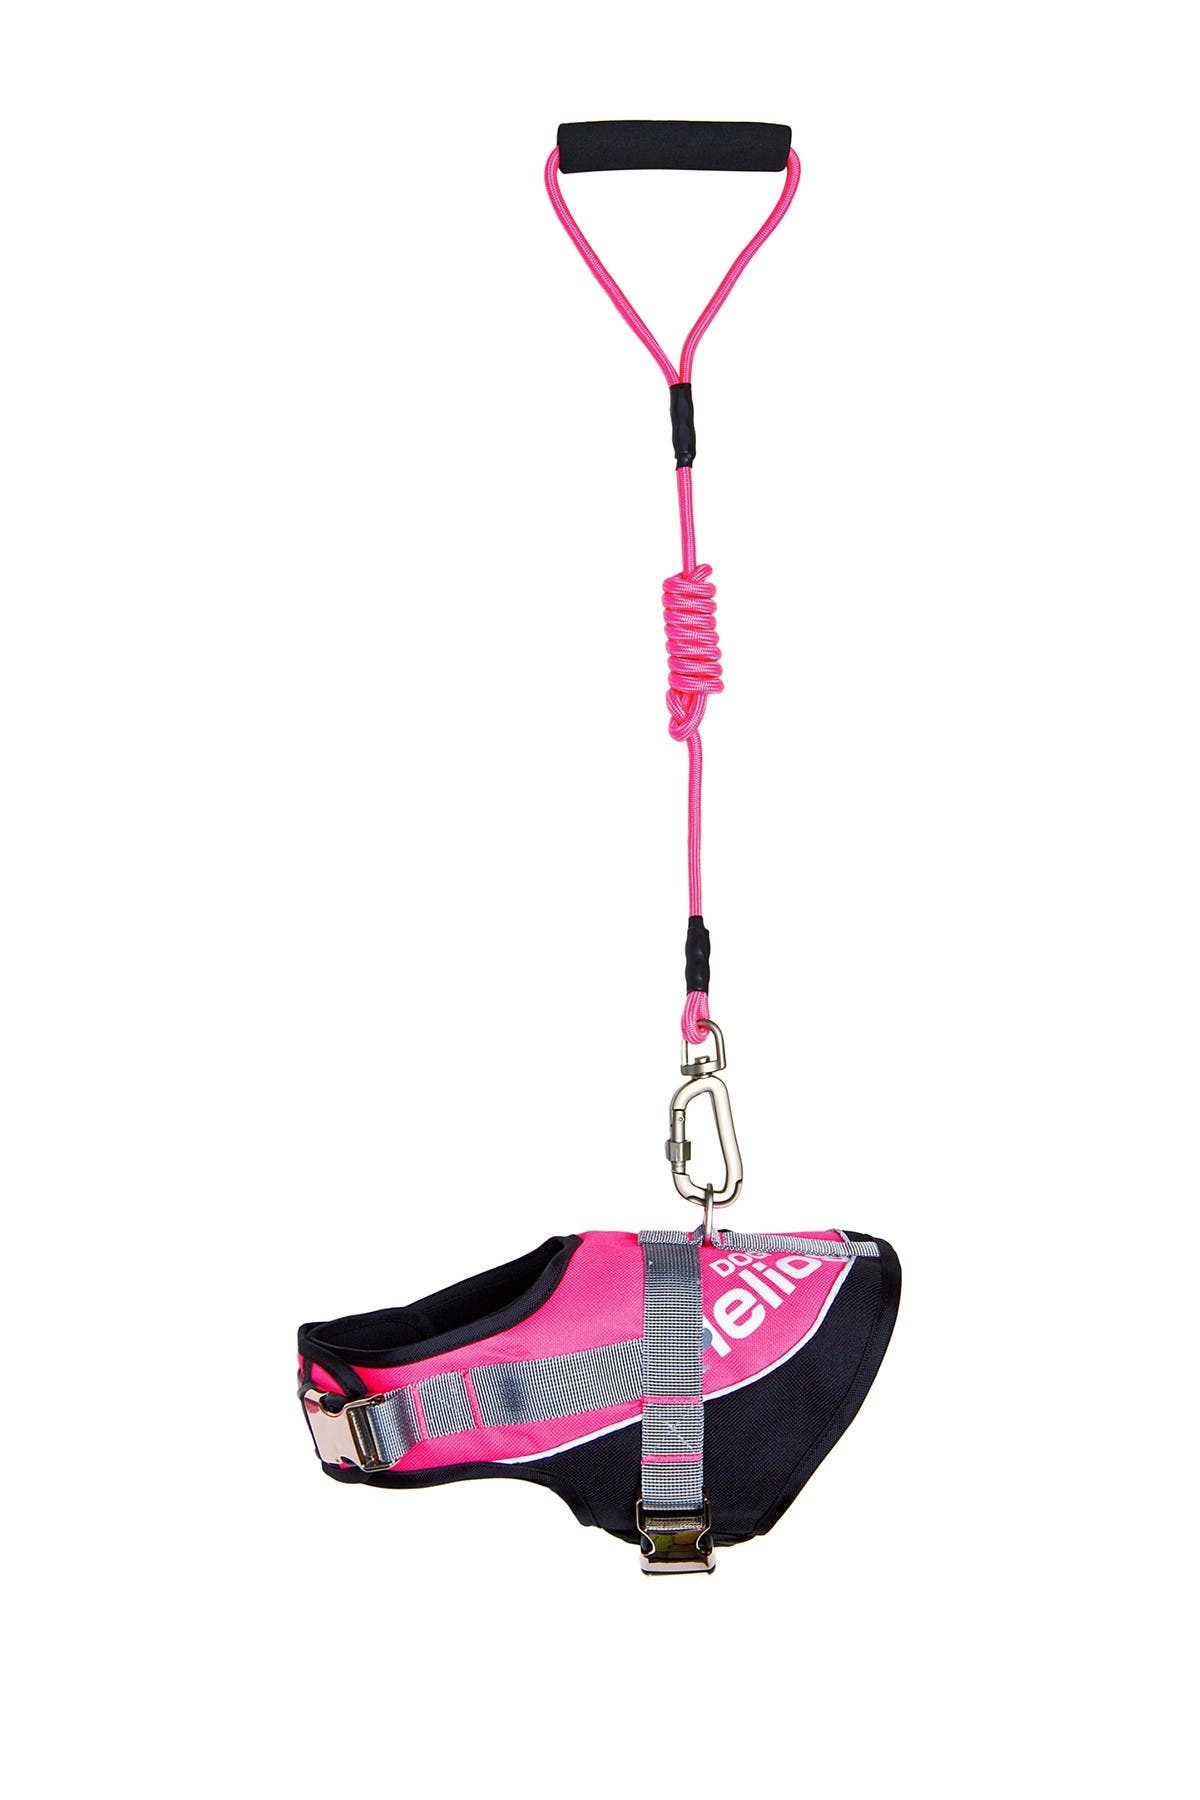 Image of PETKIT Small Pink Helios Bark-Mudder Easy Tension Reflective Endurance 2-in-1 Adjustable Dog Leash & Harness